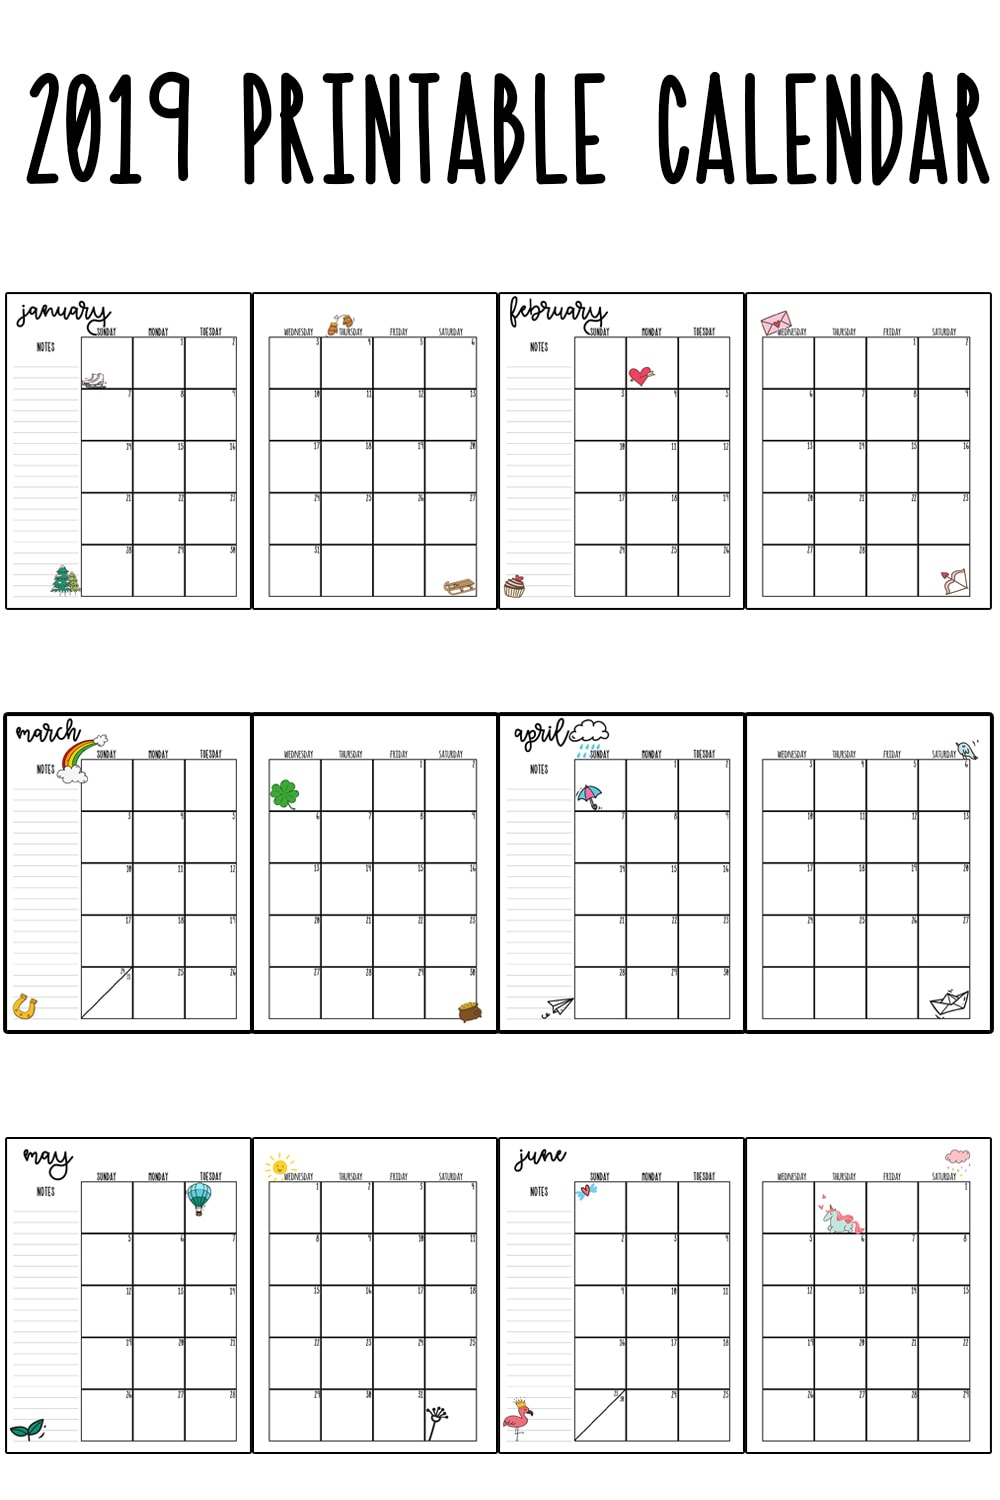 image about Monthly Printable Calendars identify 2019 Printable Calendar